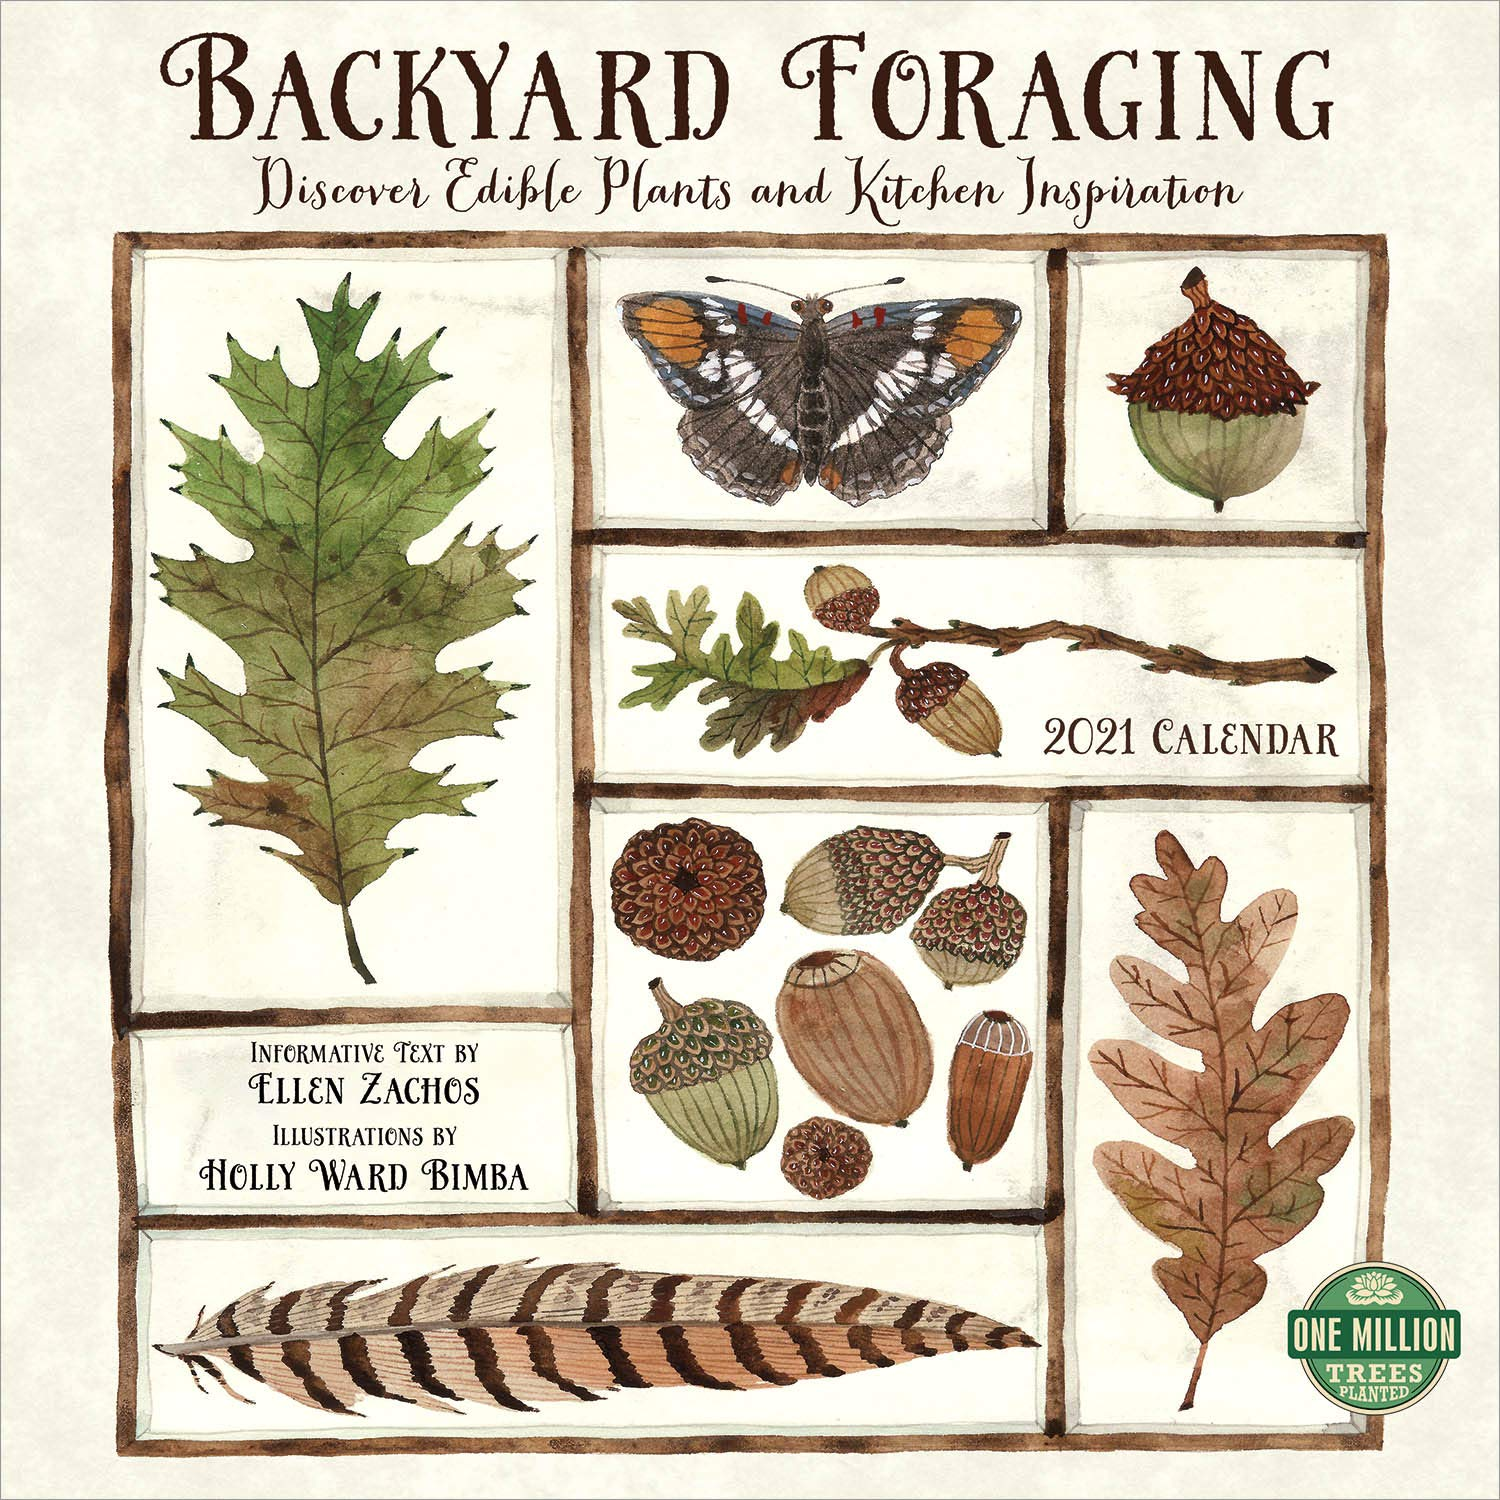 Discover Card Rewards Calendar 2021 Backyard Foraging 2021 Wall Calendar: Discover Edible Plants and